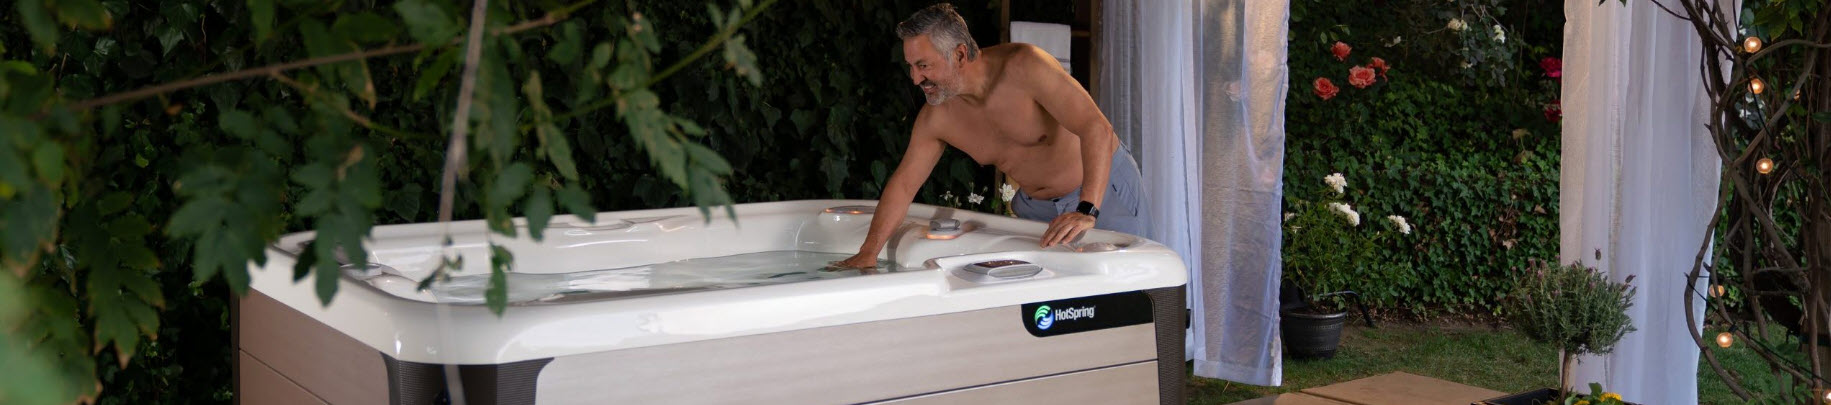 3 Questions to Guide Your Hot Tub Purchase, Hot Tub Deals Billings